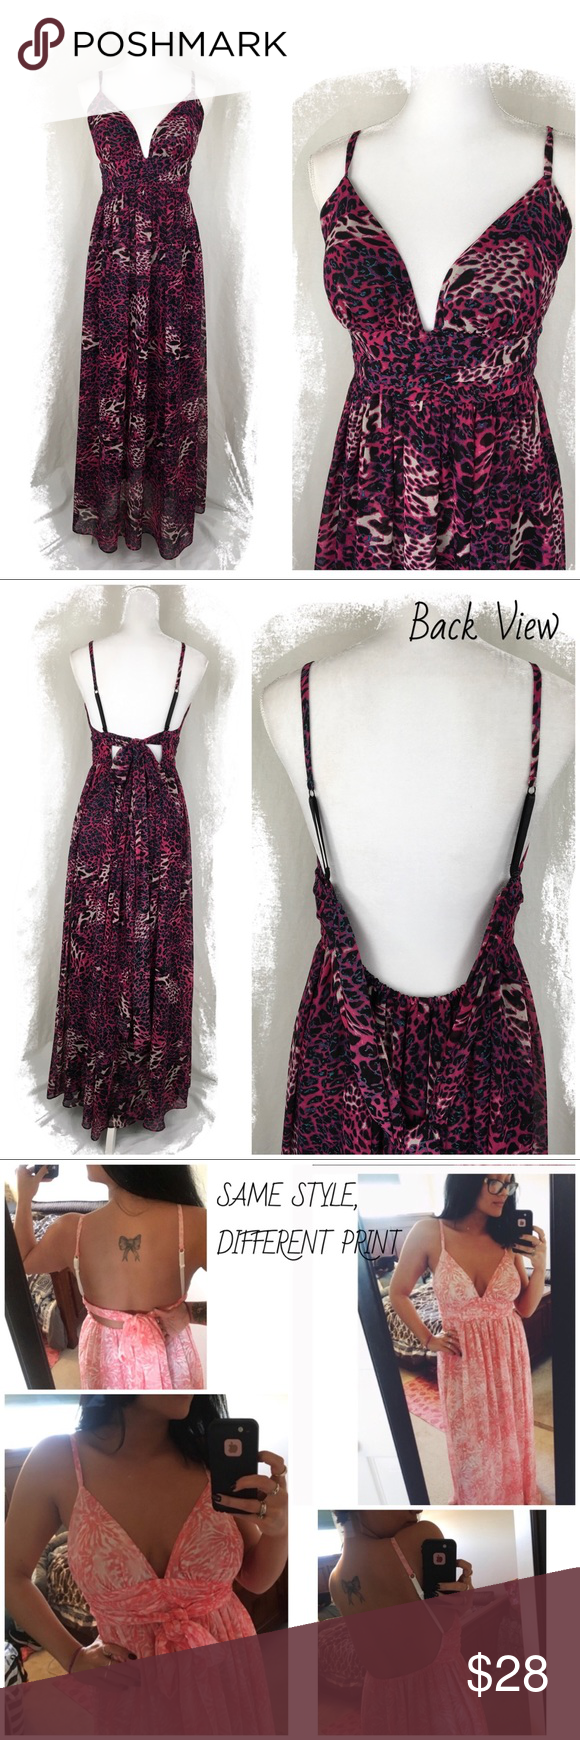 29740c89d4 Moda International Animal Print Chiffon Maxi Dress Size L. Excellent  like-new condition!